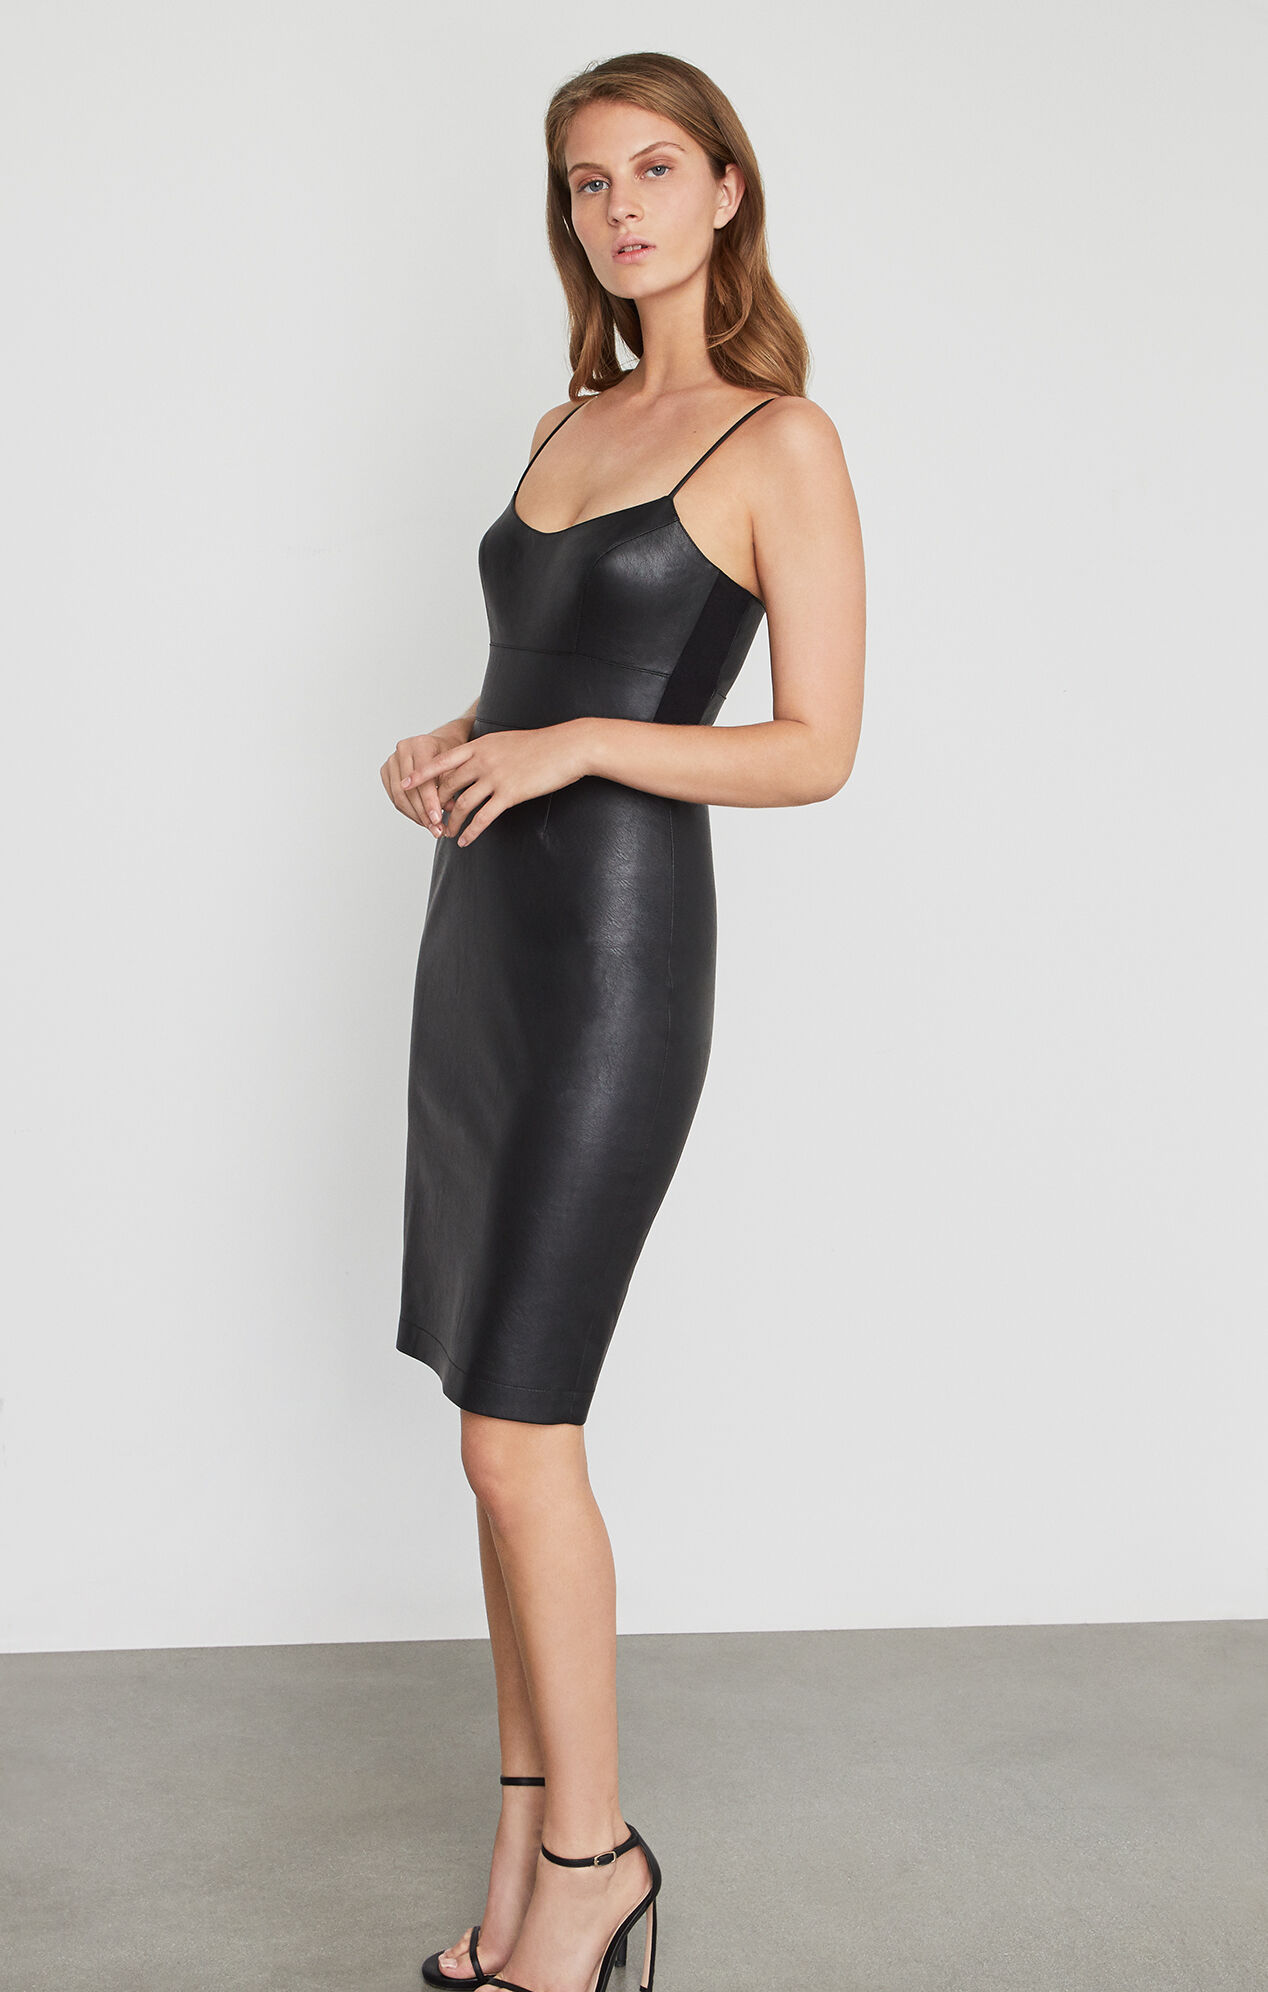 Alese faux leather dress for Leather wedding dresses black